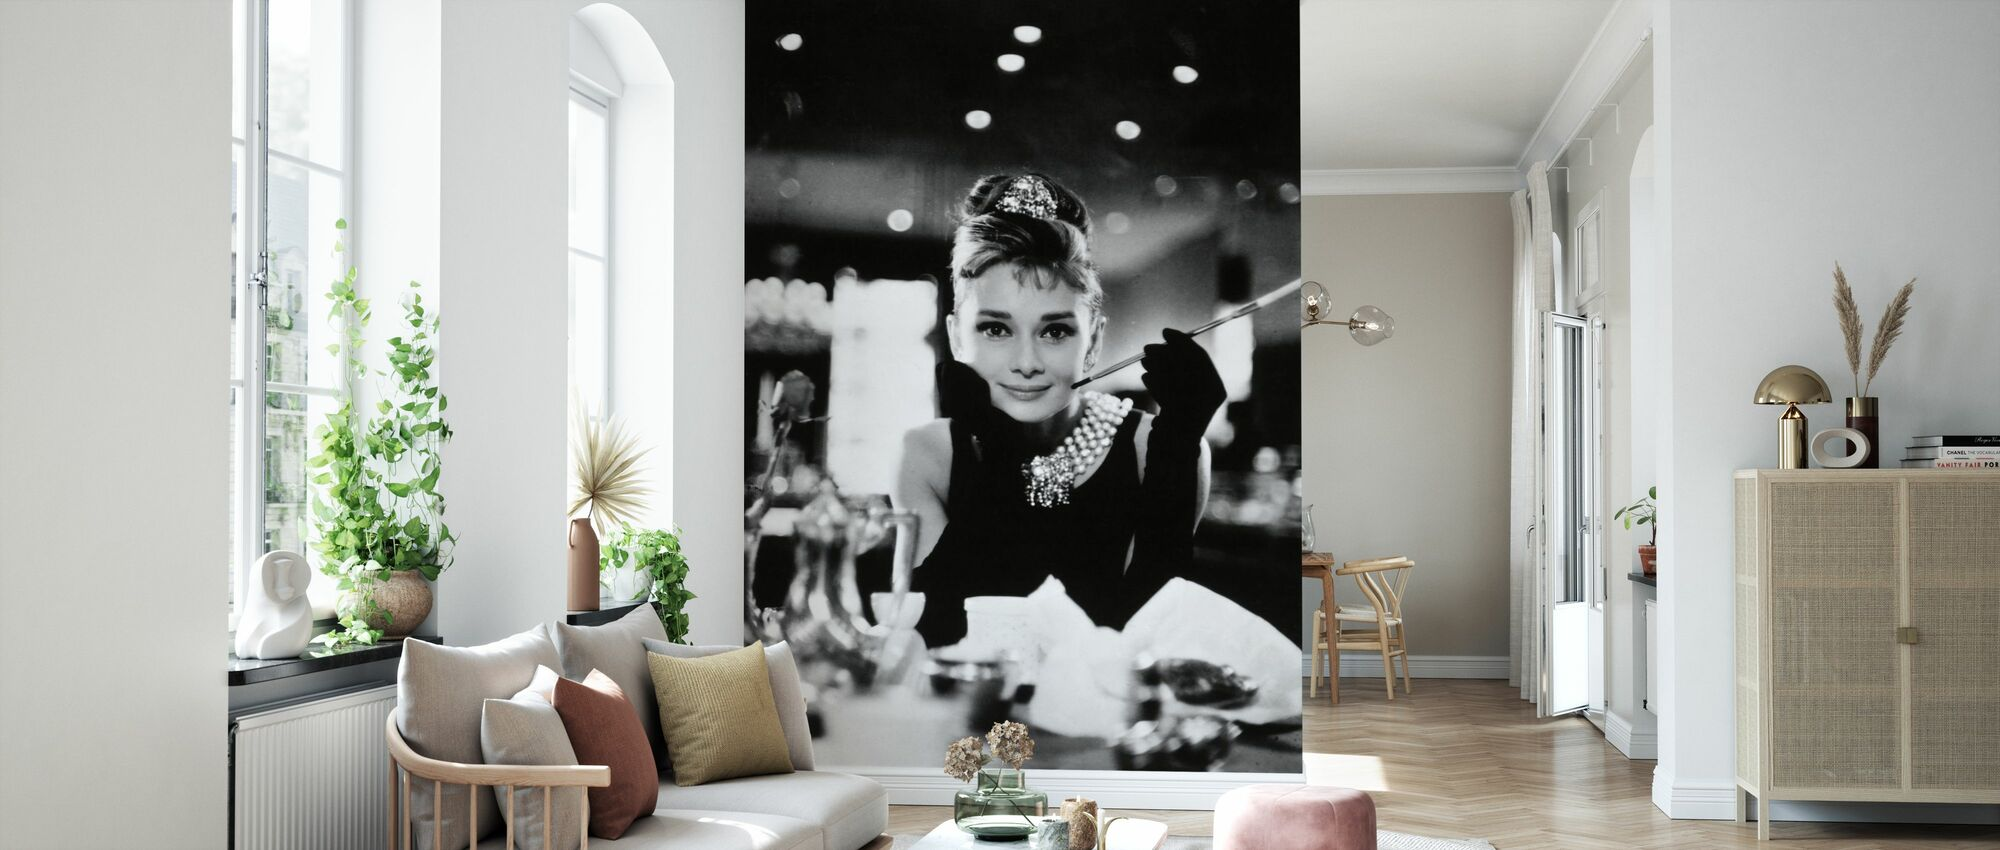 Audrey Hepburn in Breakfast at Tiffanys - Wallpaper - Living Room